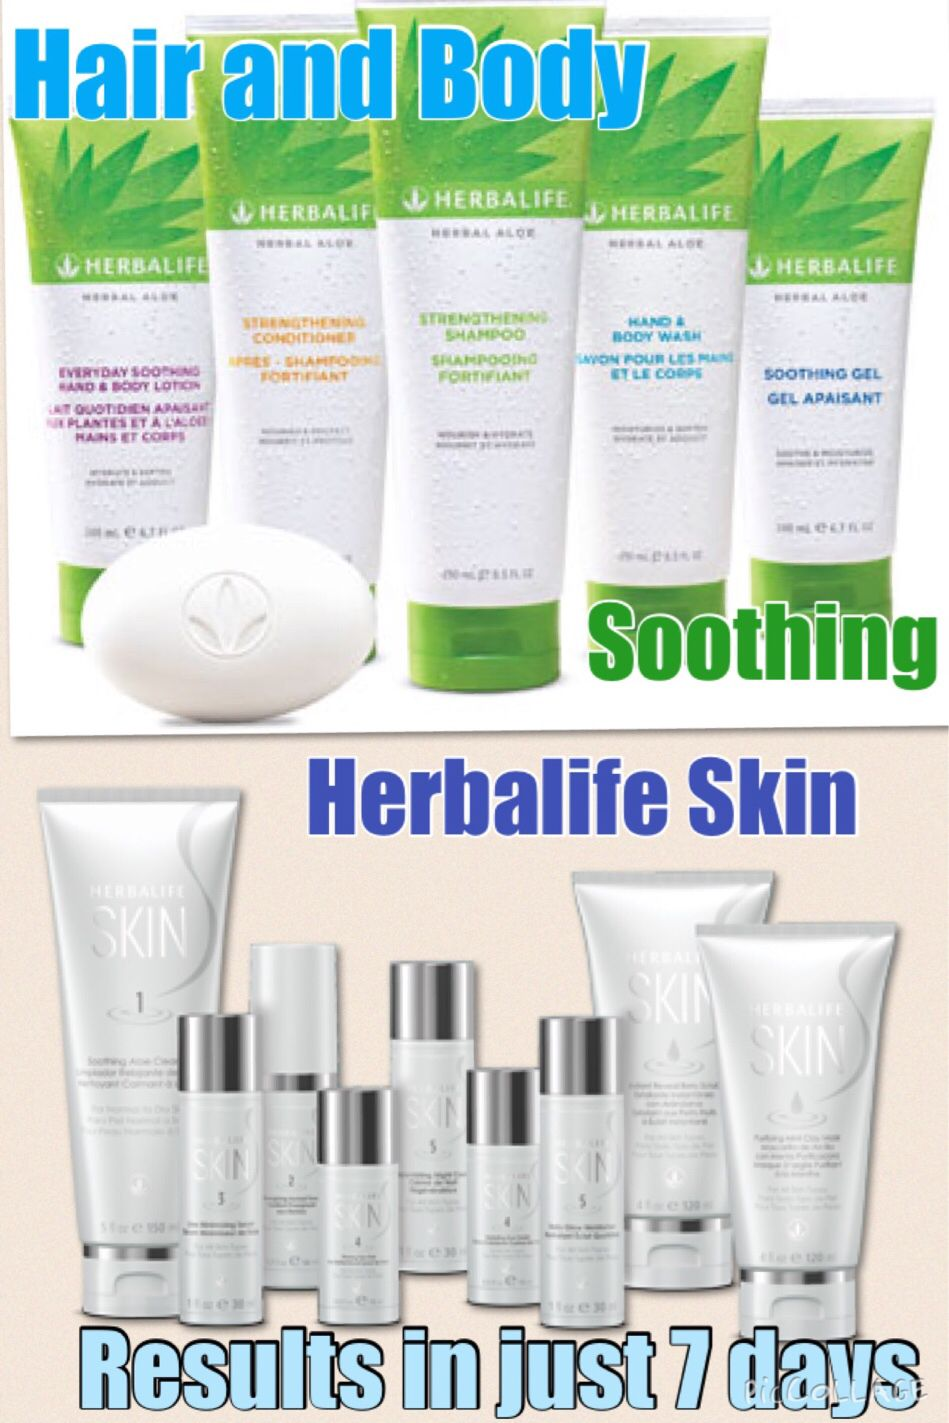 Did you know that herbalife is not just inner core